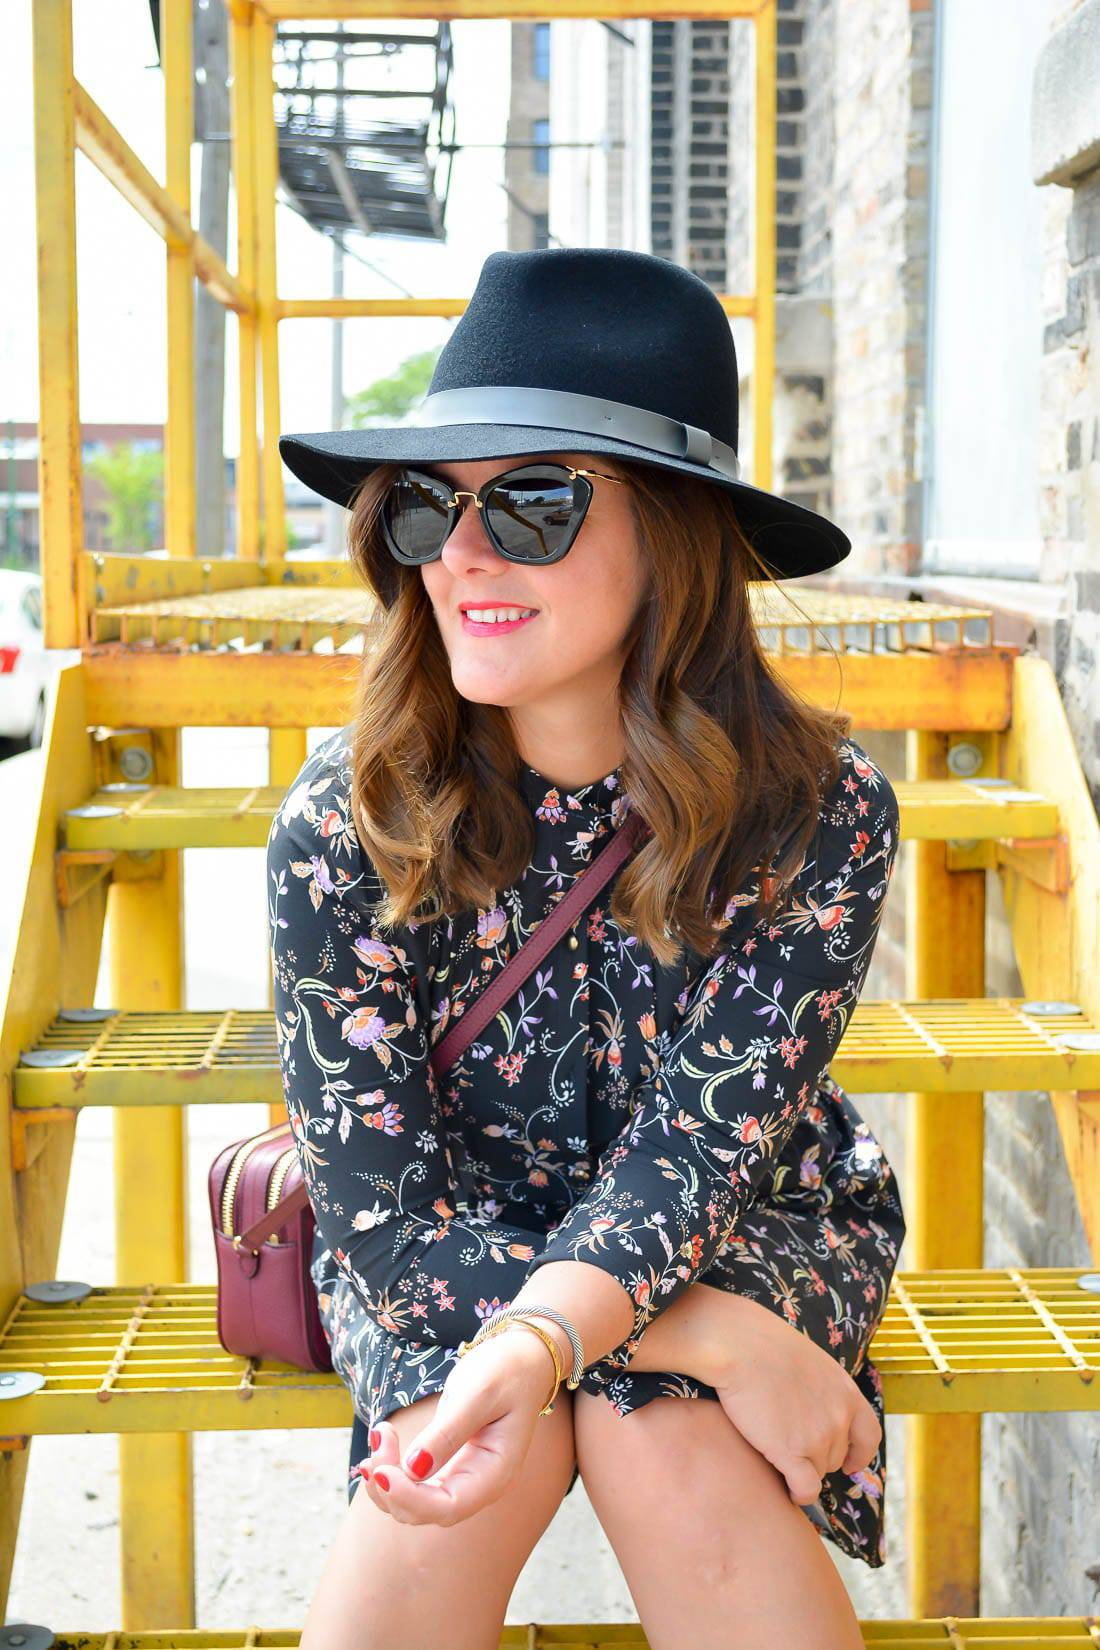 Fall Fashion Trends, Fall Must Haves, Sole Society Lace-Up Heels, Miu Miu Sunglasses, Sole Society Black Fedora, JustFab floral dress, Oxblood Tory Burch Cross Body Bag, Chicago Fashion Blogger